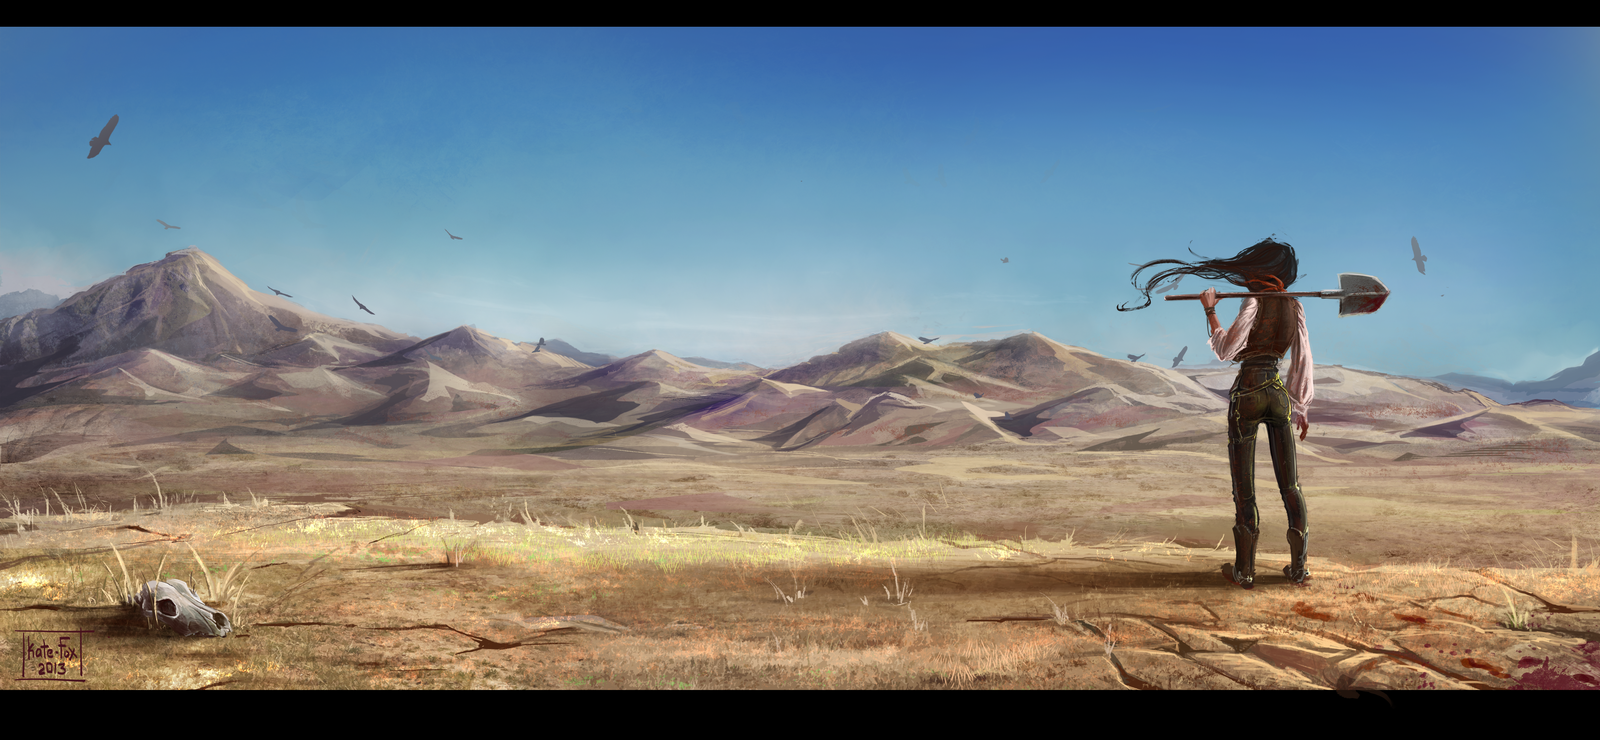 the_desert_prairie_by_kate_fox-d6tpyh5.png